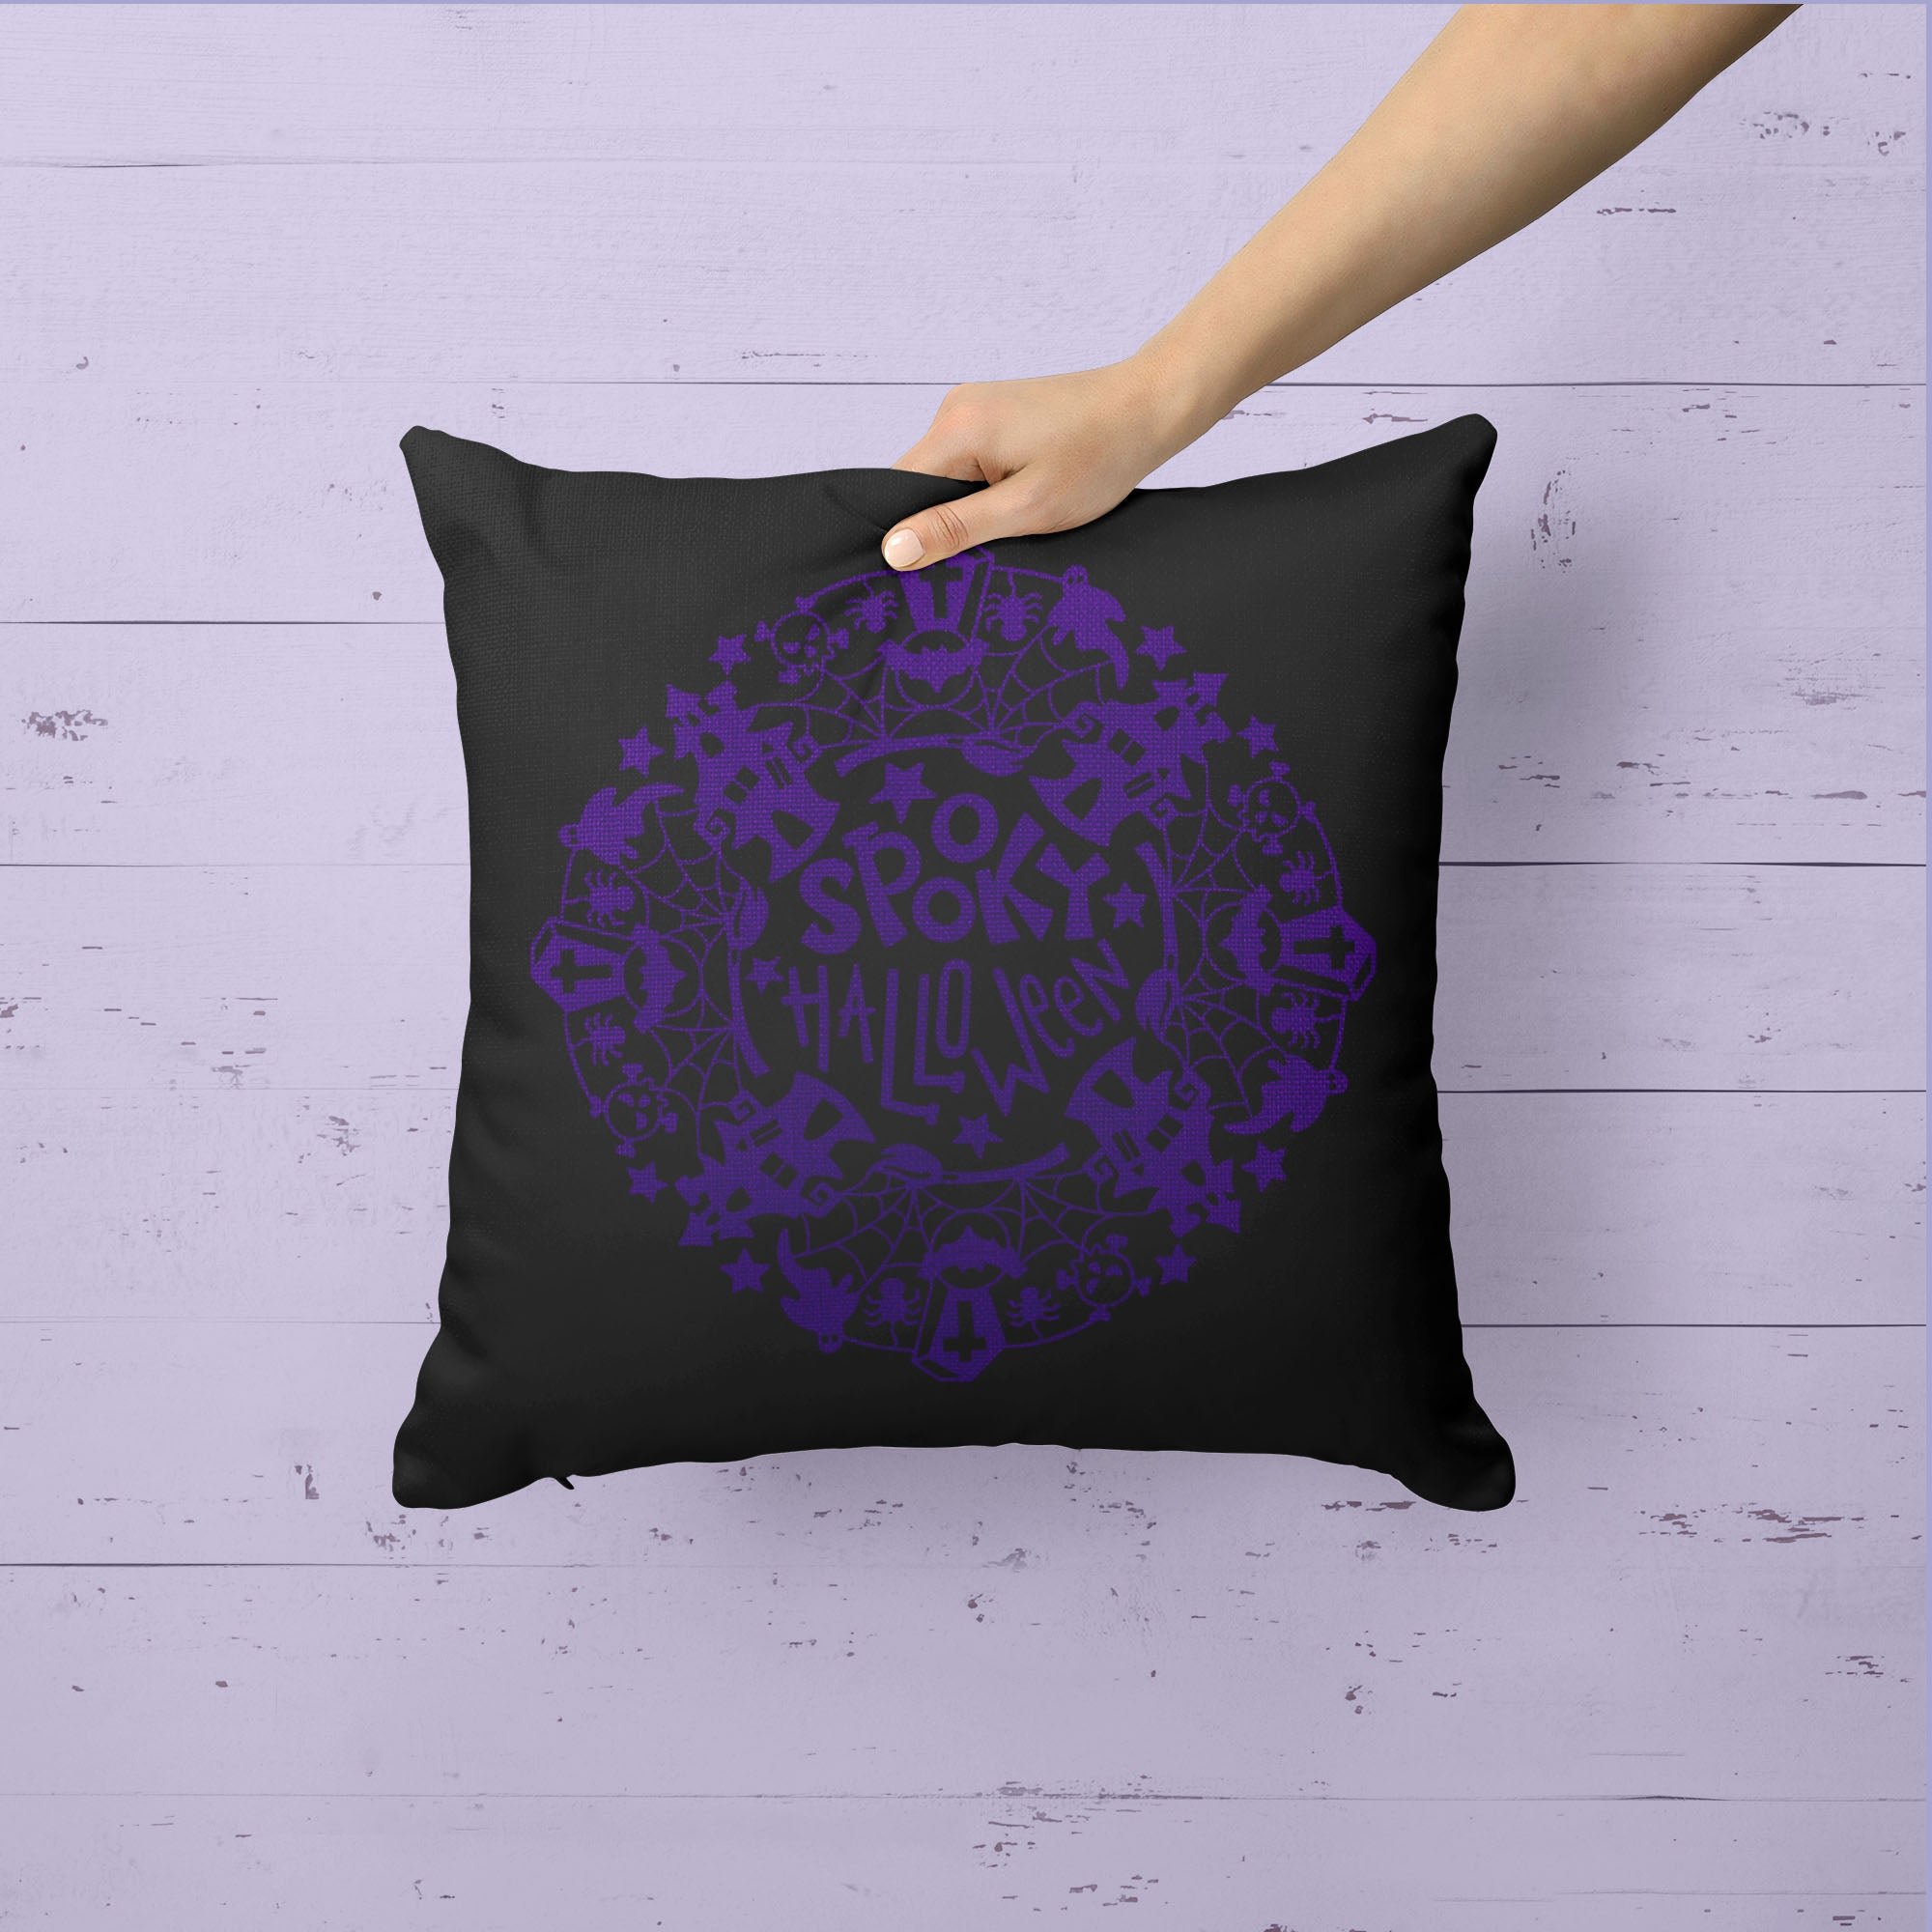 Cute Halloween Pillow Cover Typography Throw Pillow Spooky Halloween W Shirts By Sarah